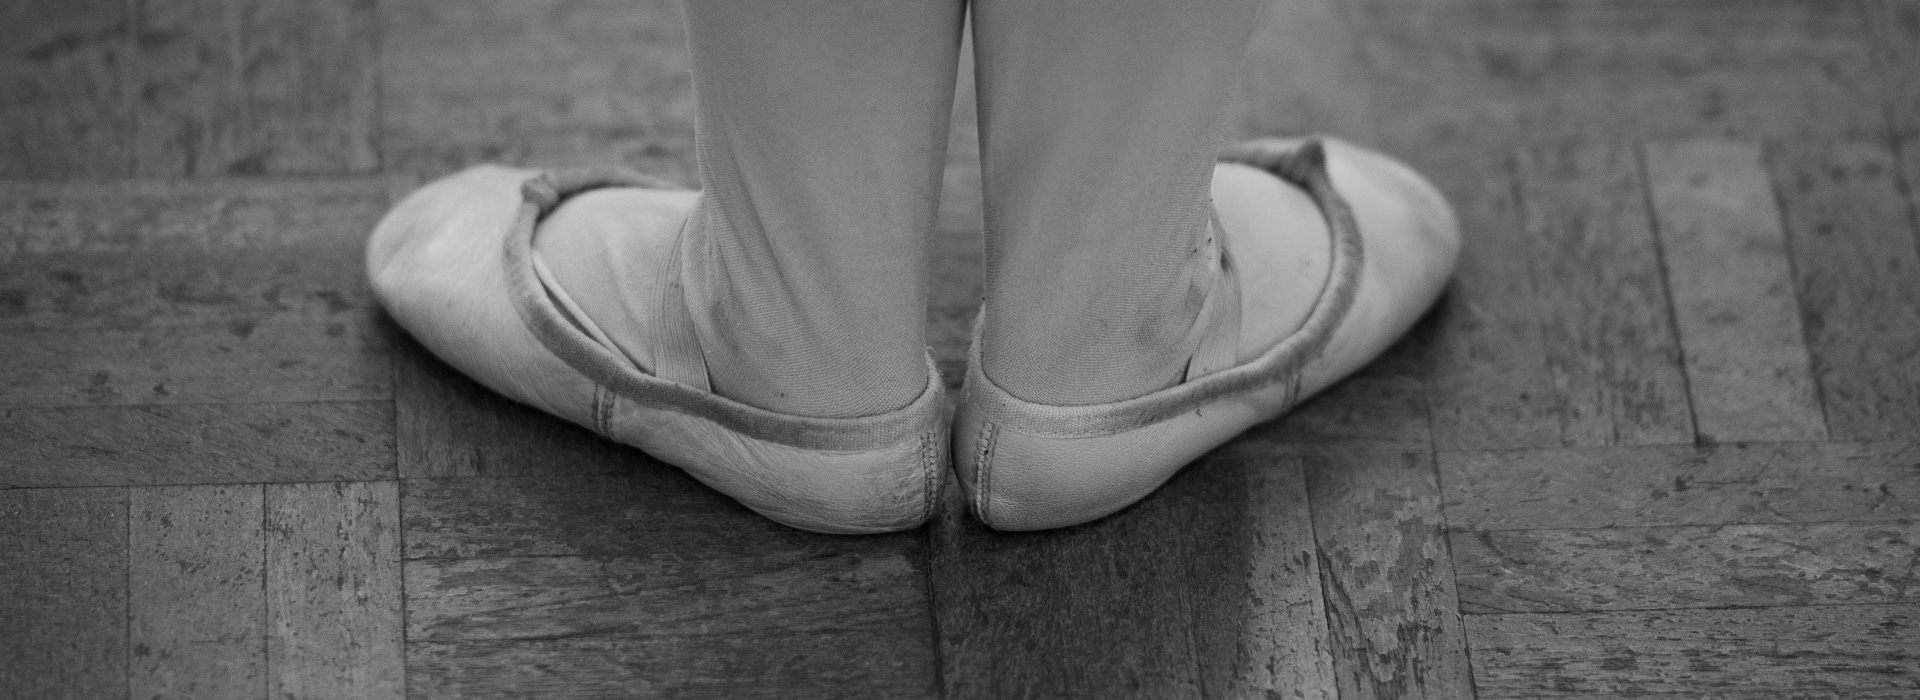 bw-shoes-slider-1920x700